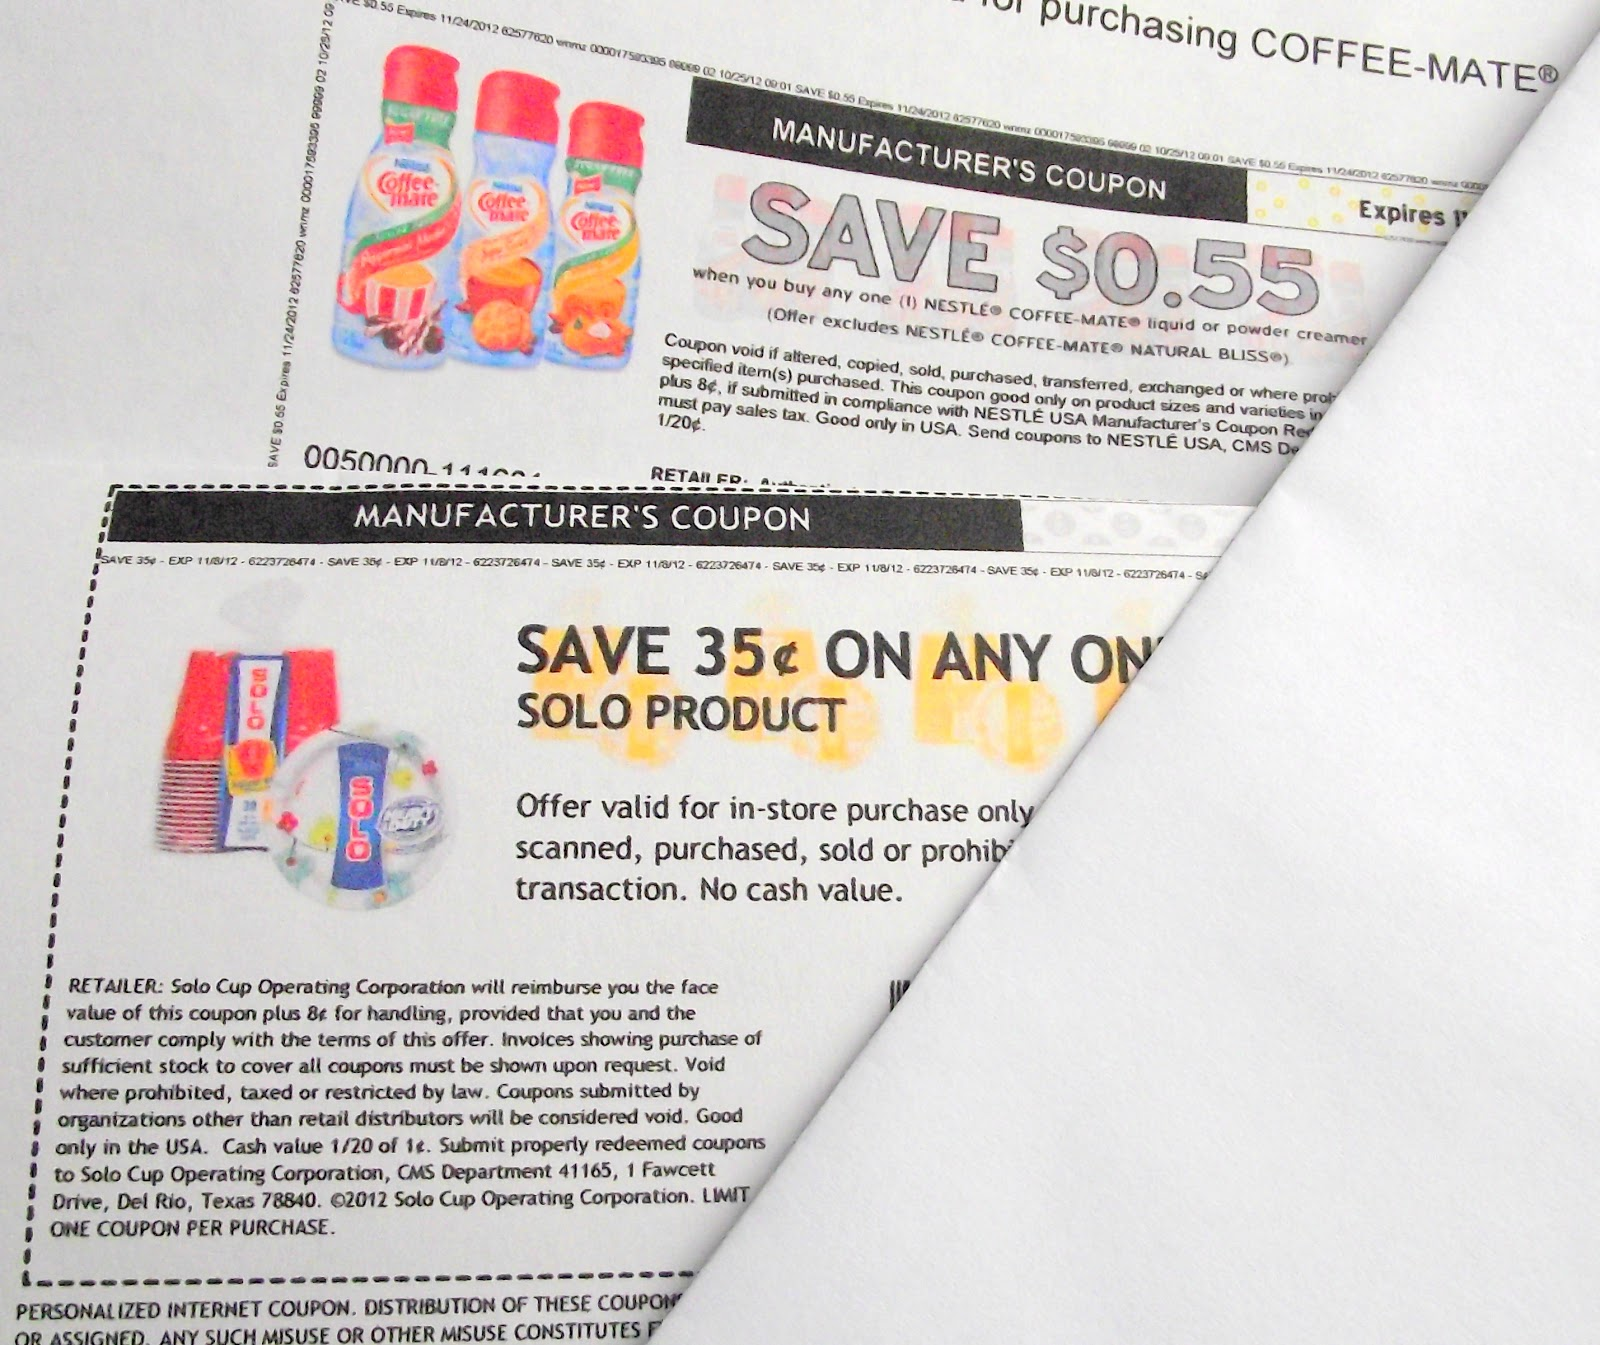 Manufacturer Coupons Mail >> Manufacturing Coupons By Mail Corner Bakery Coupons Printable